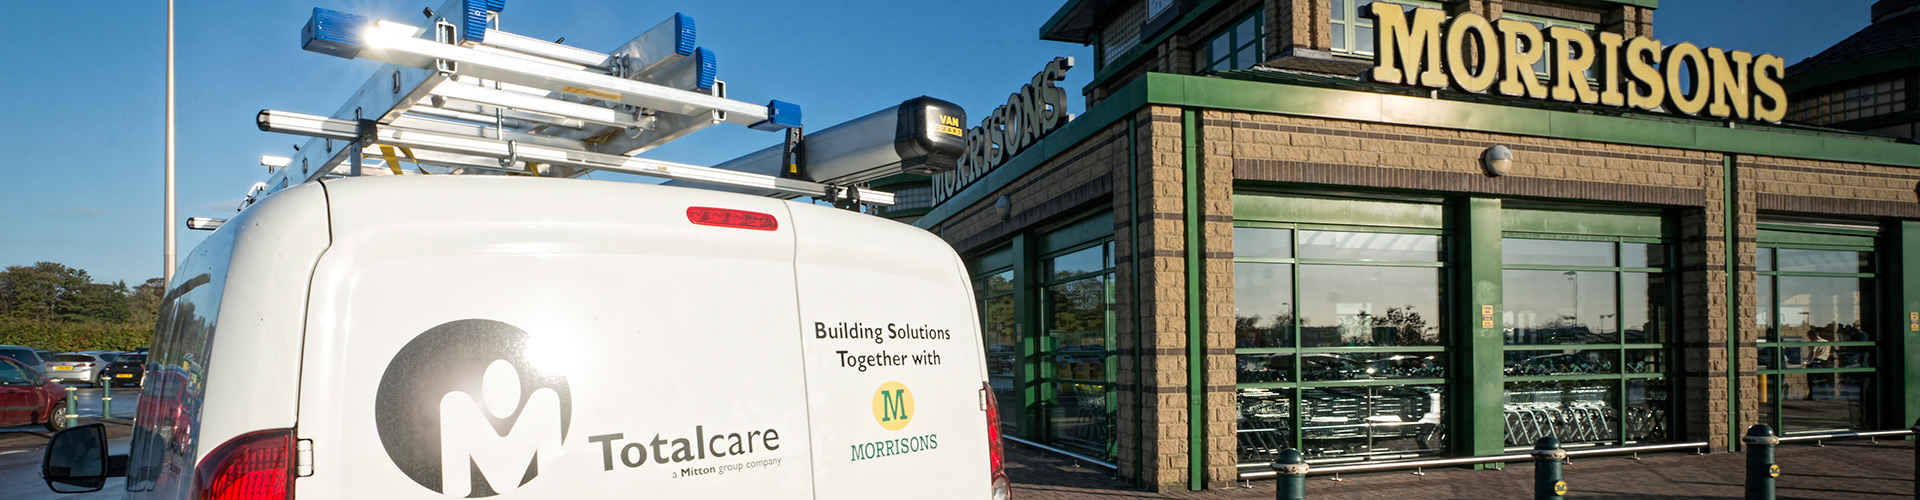 Mitton Total Care Outside Morrisons